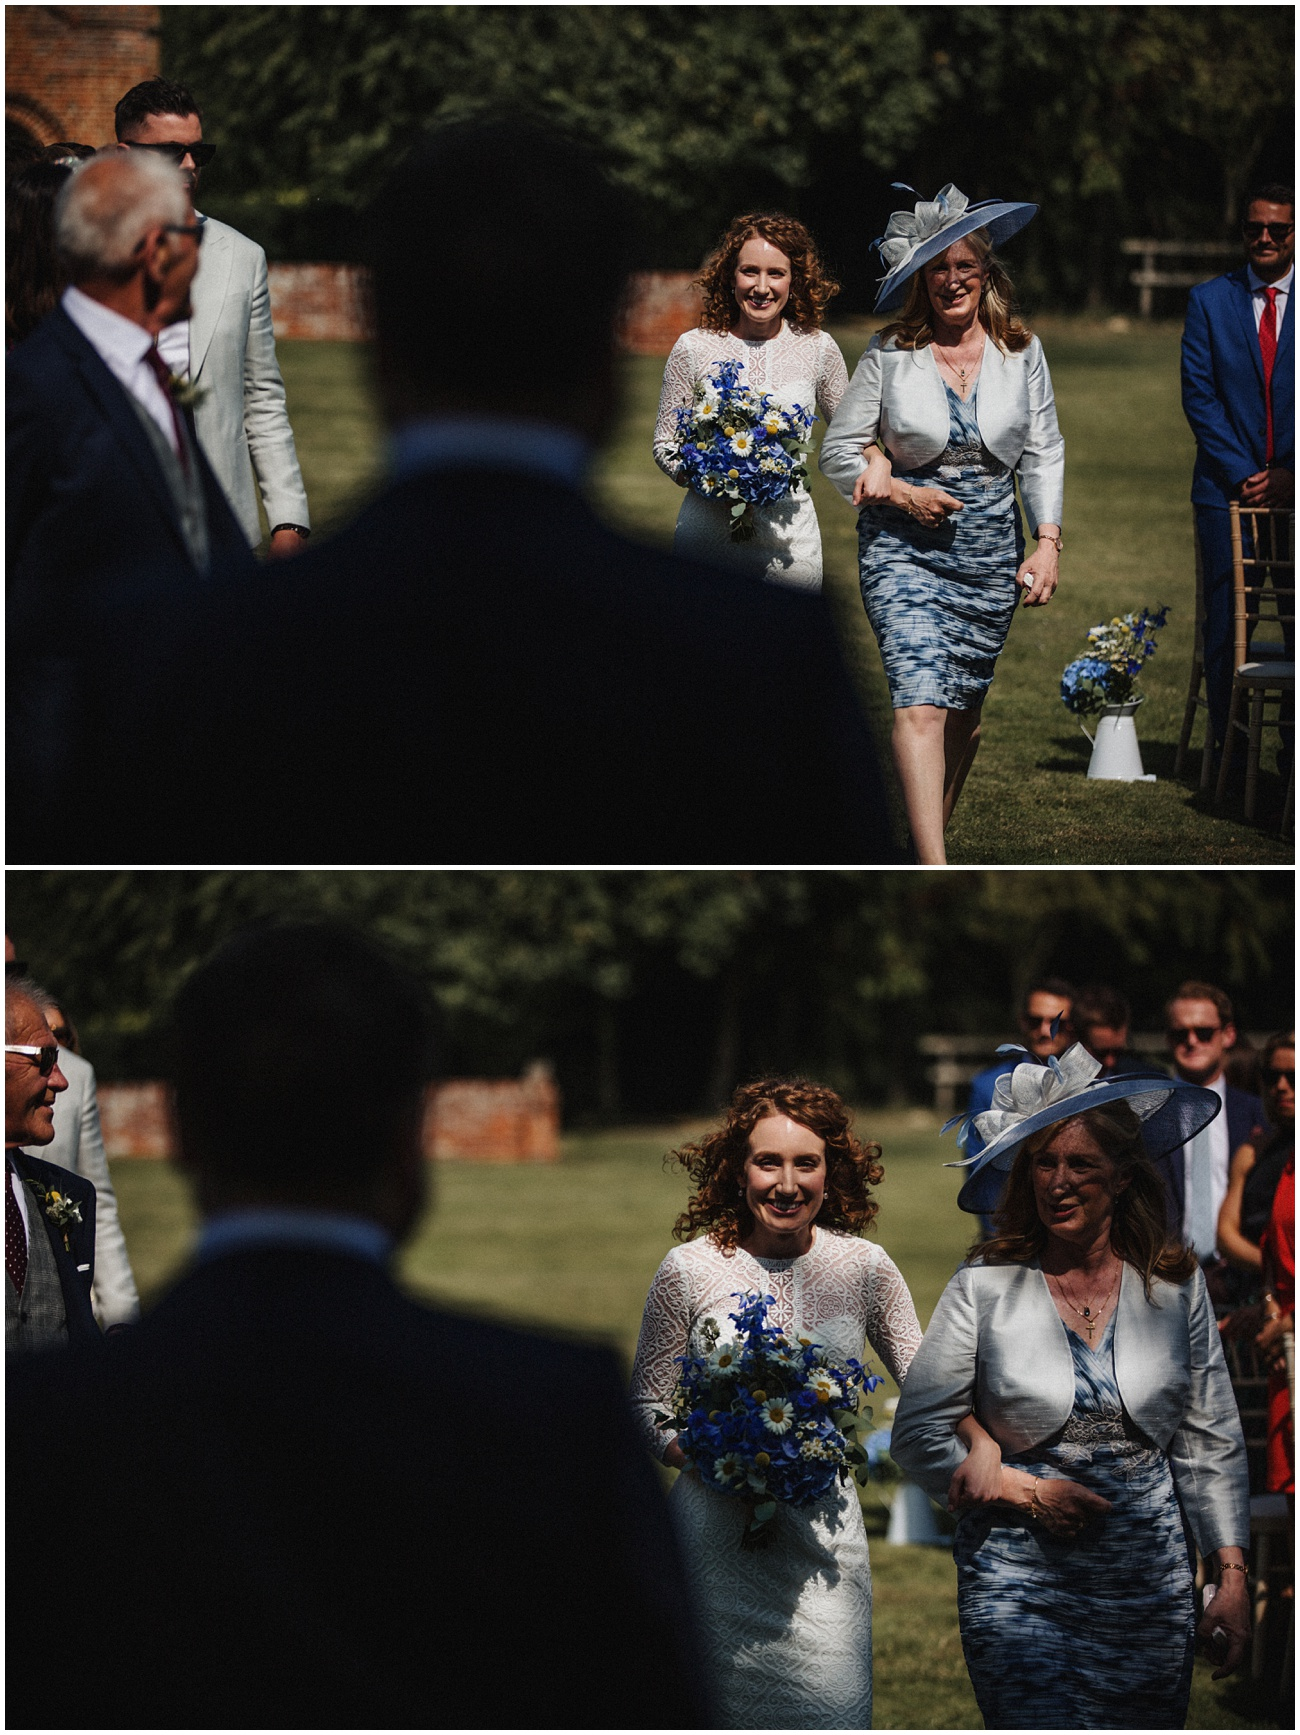 The bride and her mum walk down the aisle as she sees the groom for the first time.